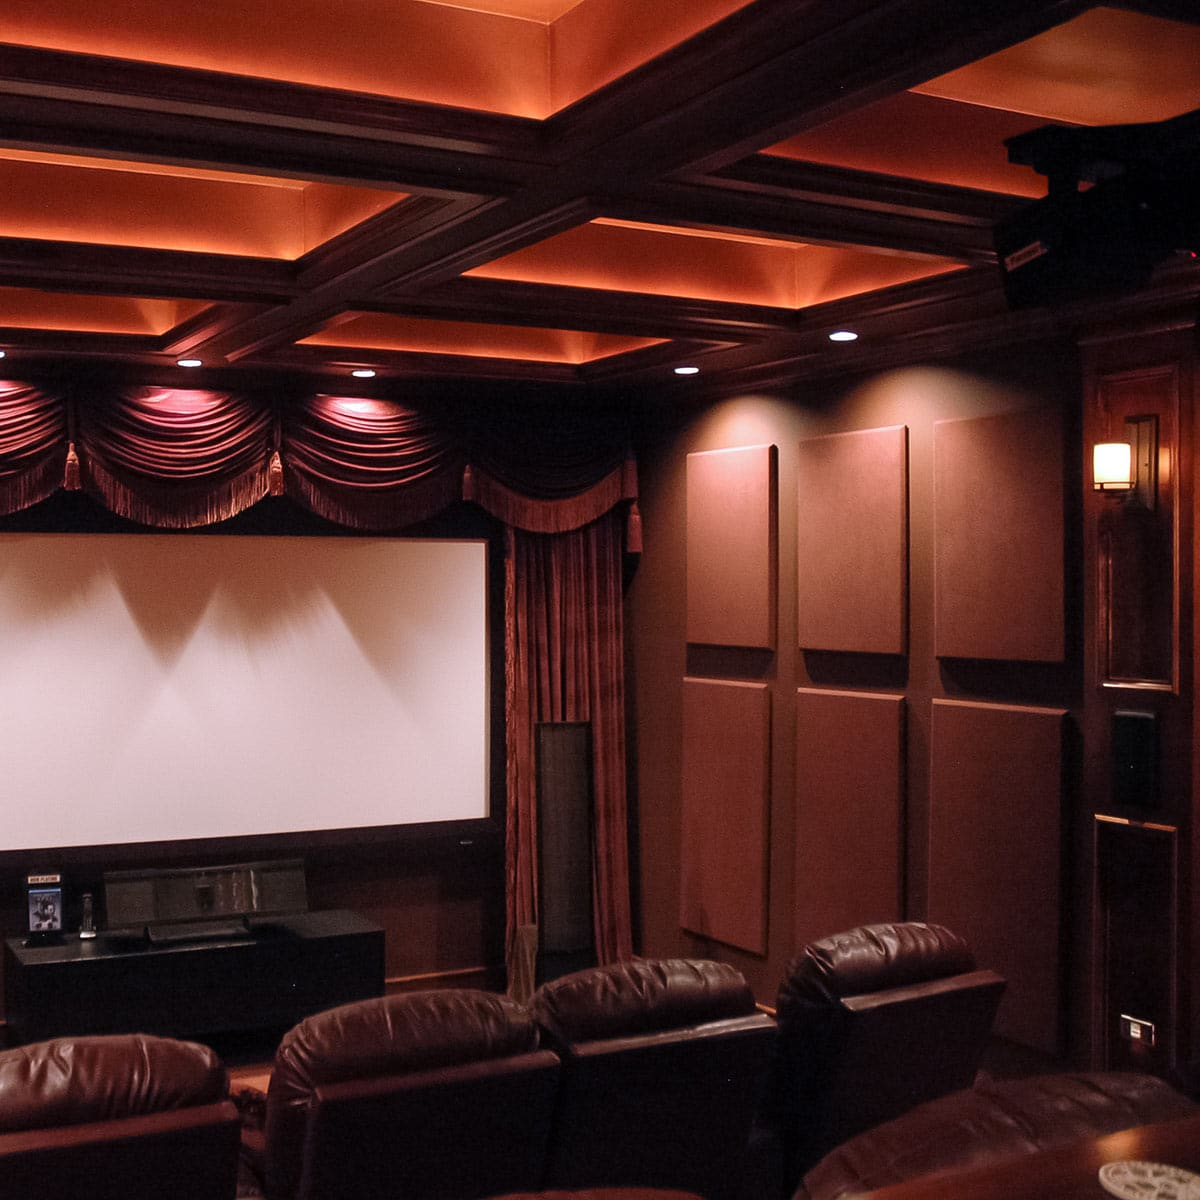 Captivating Jeff Autoru0027s Home Theater Using Absorptive SoundSued Acoustic Wall Panels.